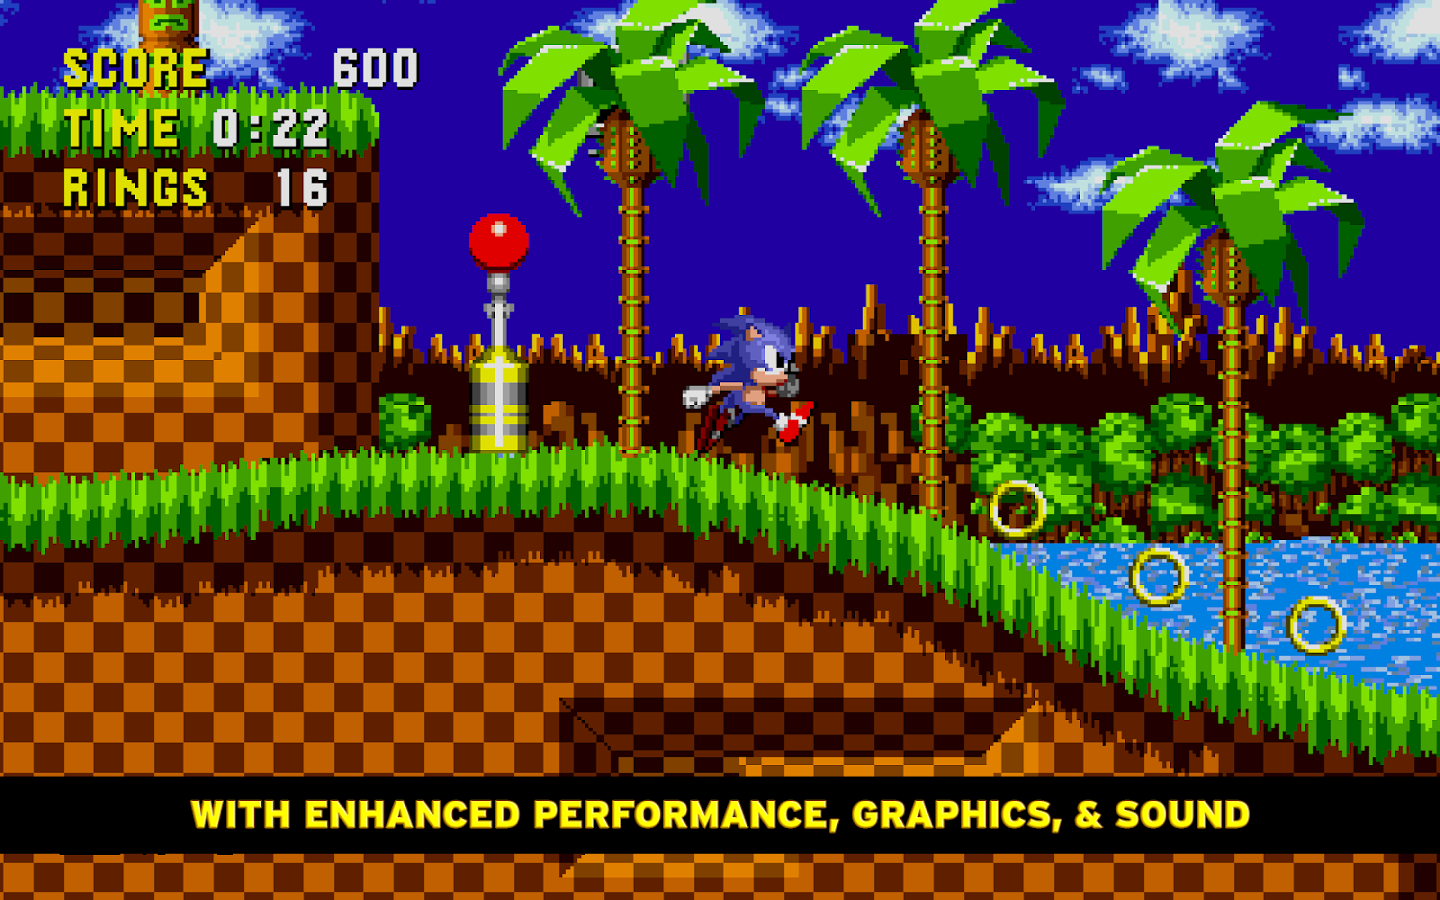 Sonic The Hedgehog Screenshot 6